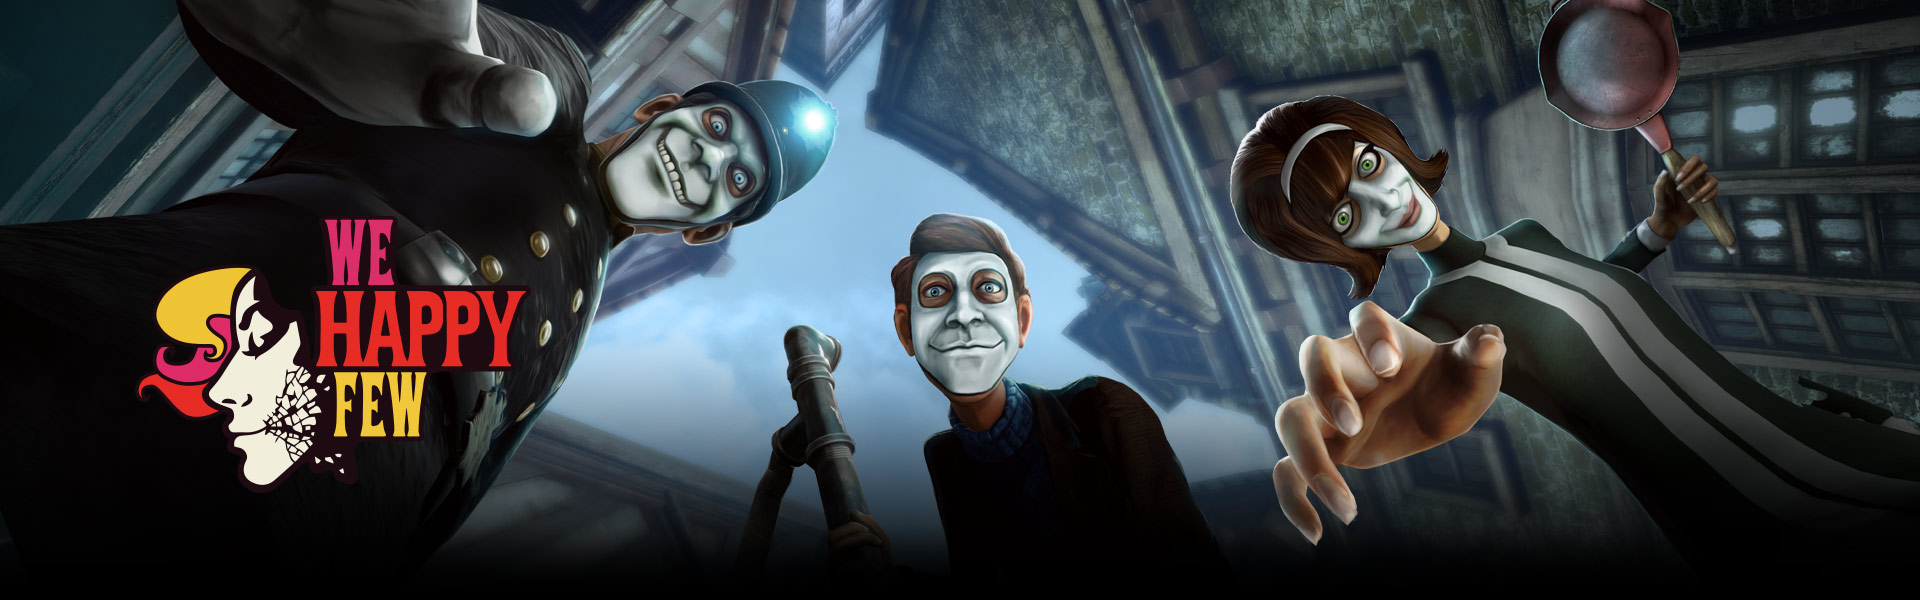 We Happy Few - Bobbie and two Wellie characters with white smiling masks looking down on you